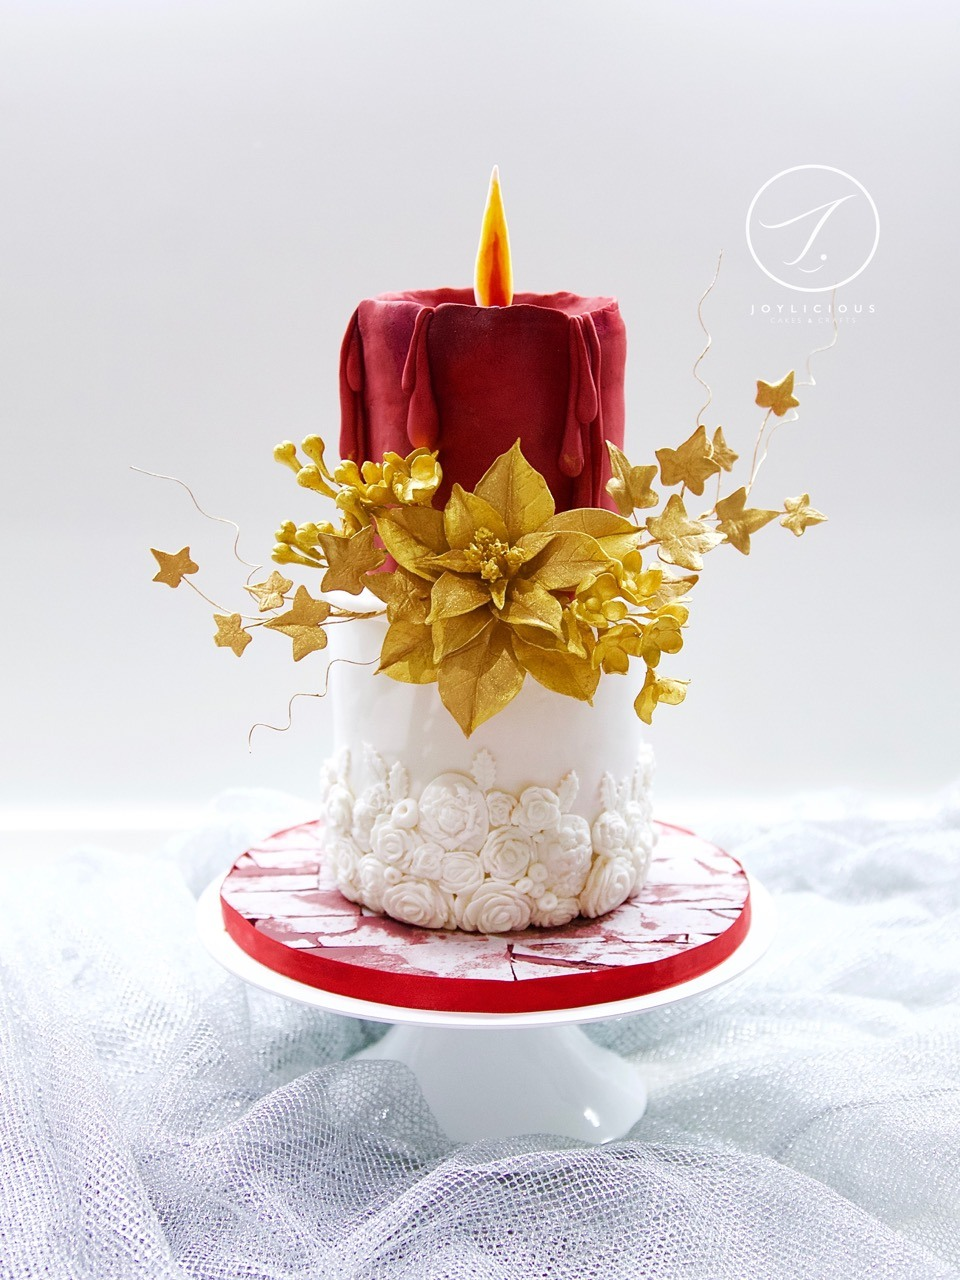 Christmas candle cake with sugar flowers